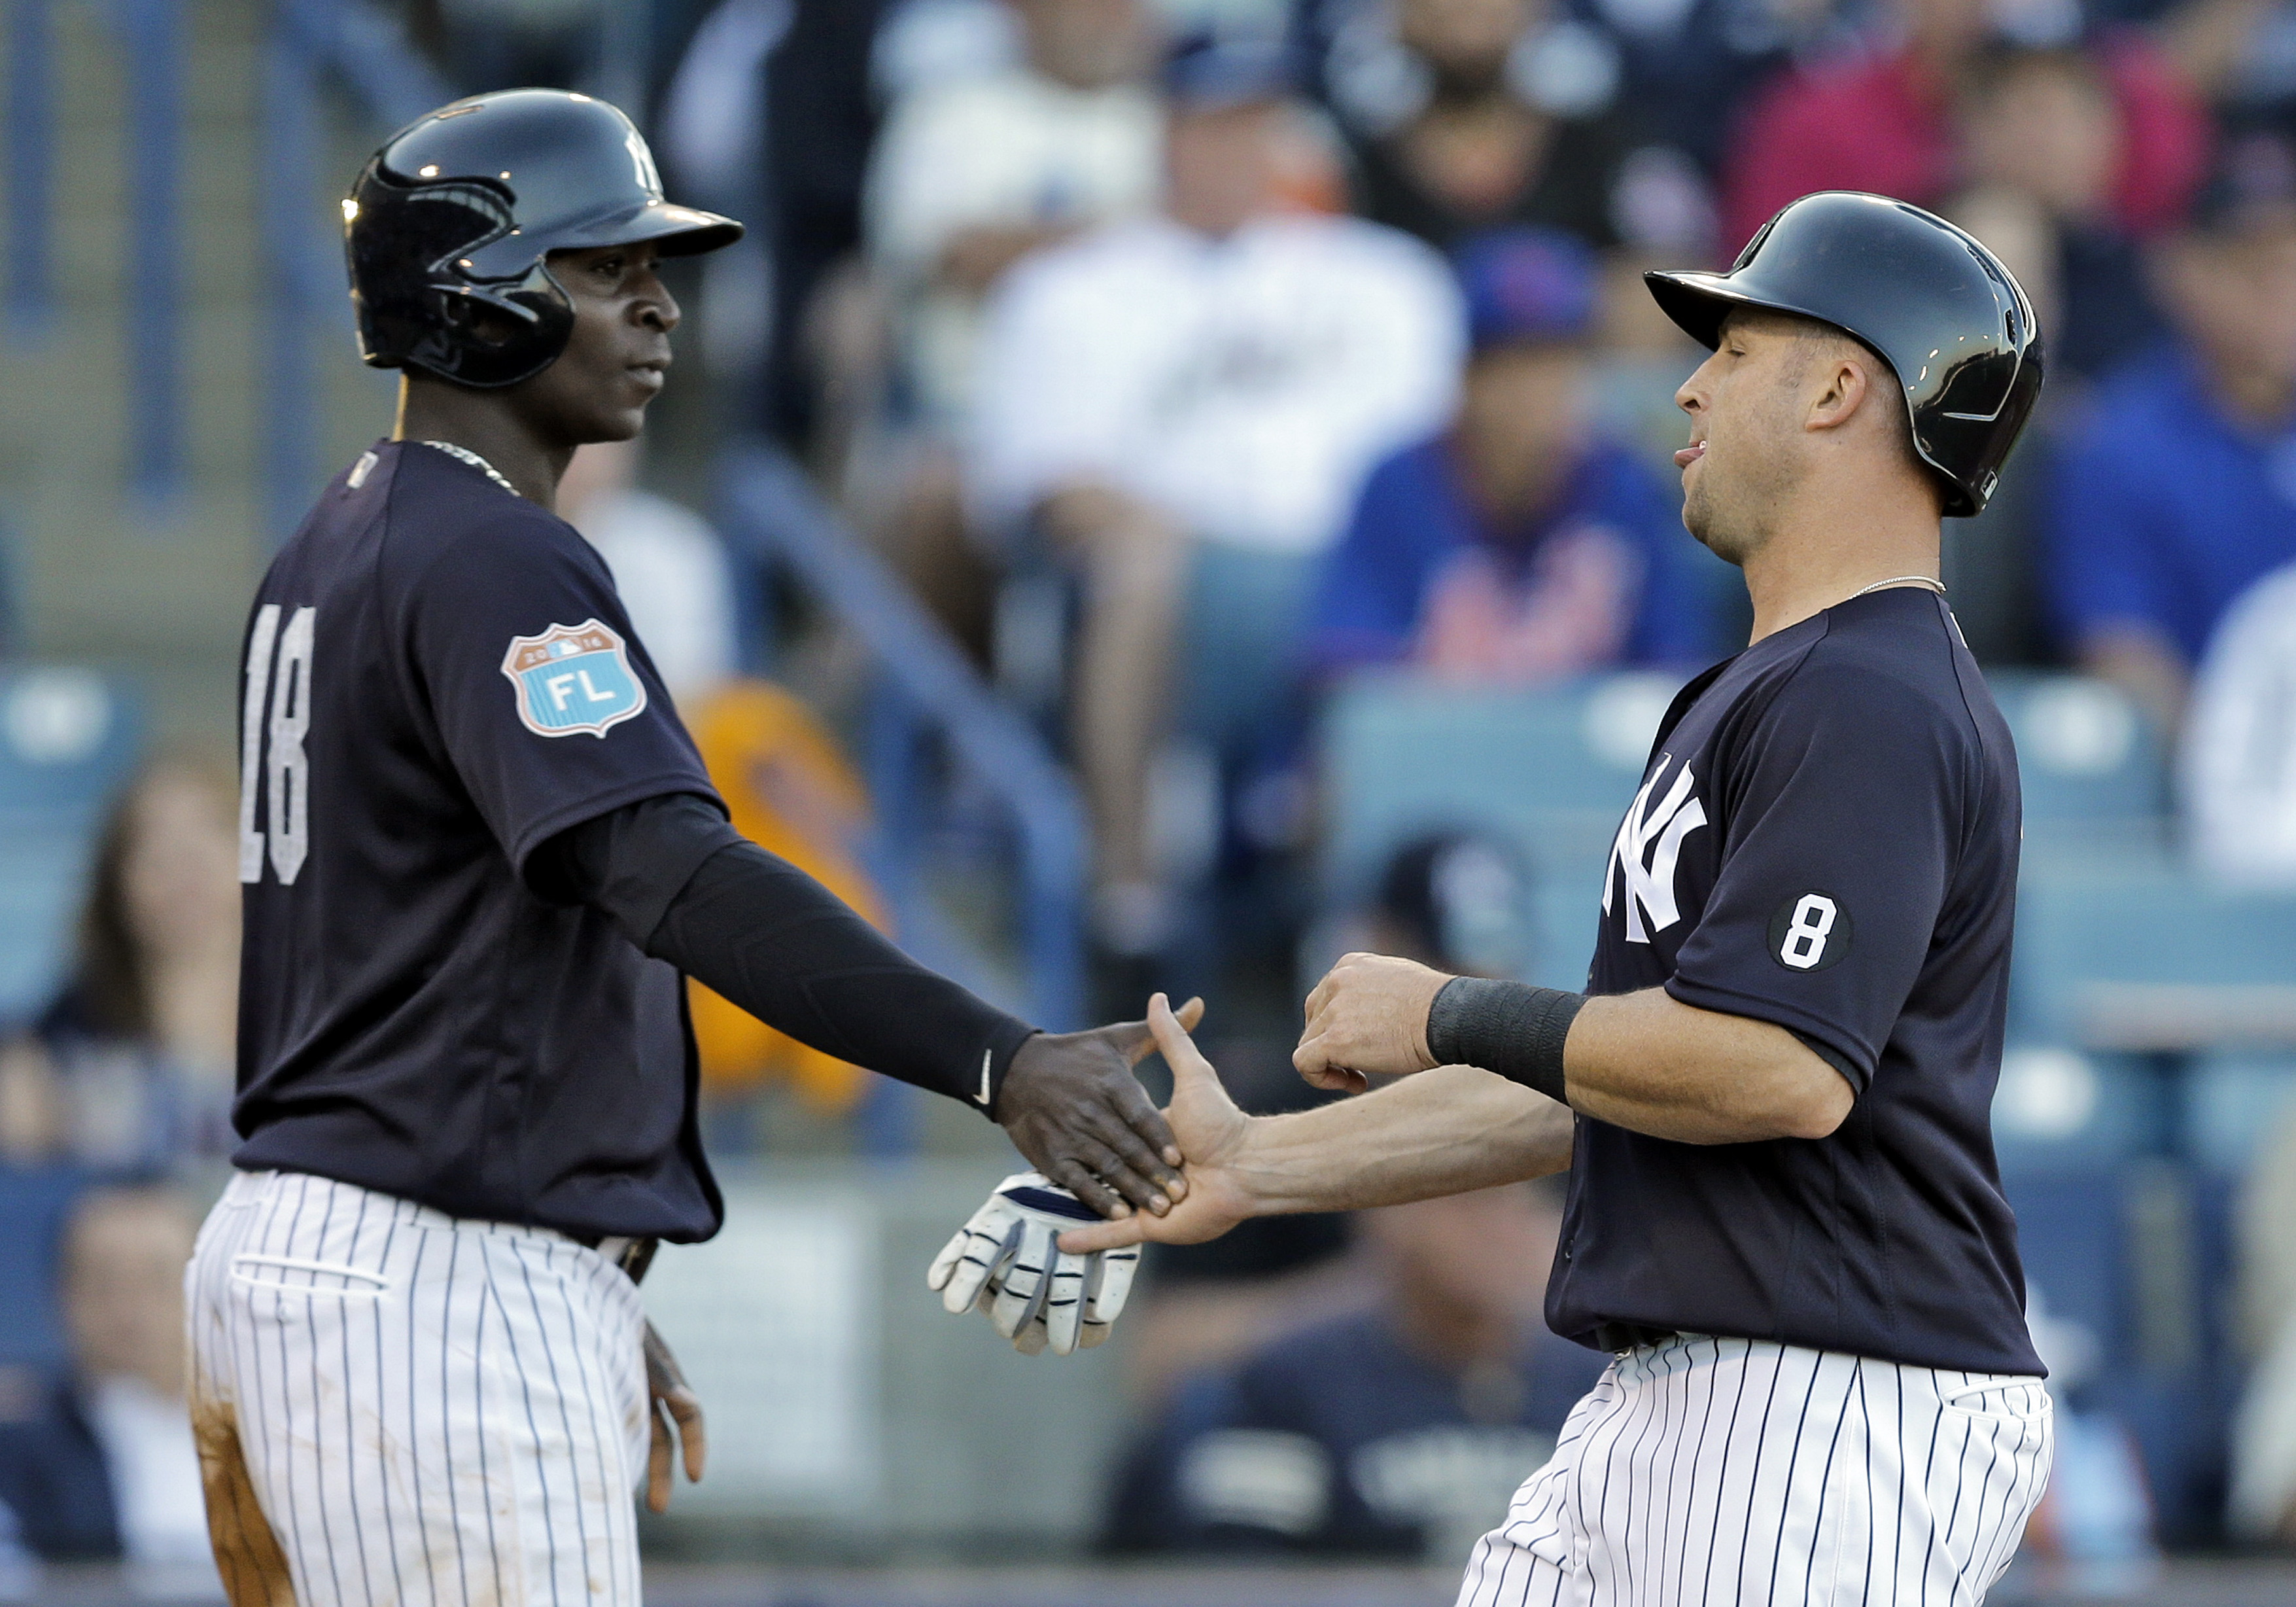 New York Yankees' Brett Gardner, right, and Didi Gregorius celebrate after scoring on a two-run single by Alex Rodriguez off New York Mets starting pitcher Steven Matz during the second inning of a spring training baseball game Tuesday, March 22, 2016, in